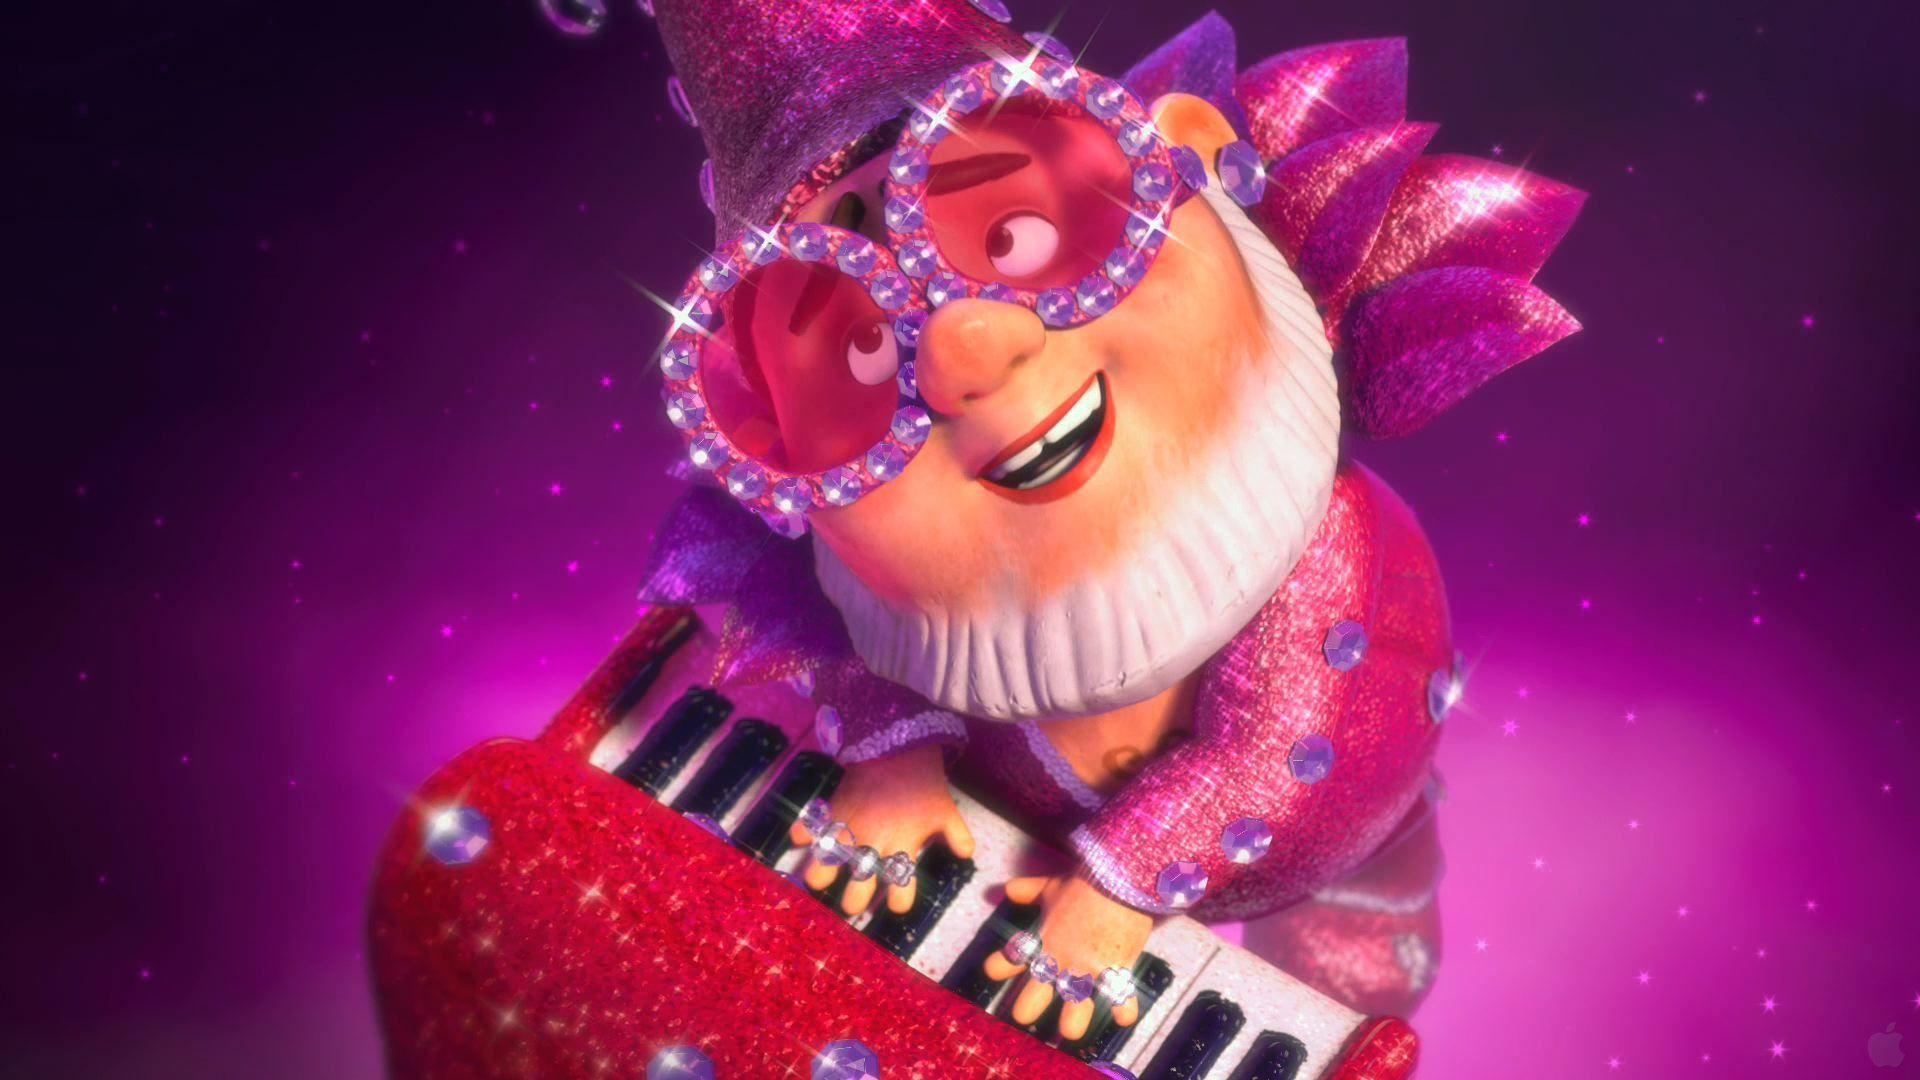 Elton John Lawn Gnome from Gnomeo and Juliet Desktop Wallpapers